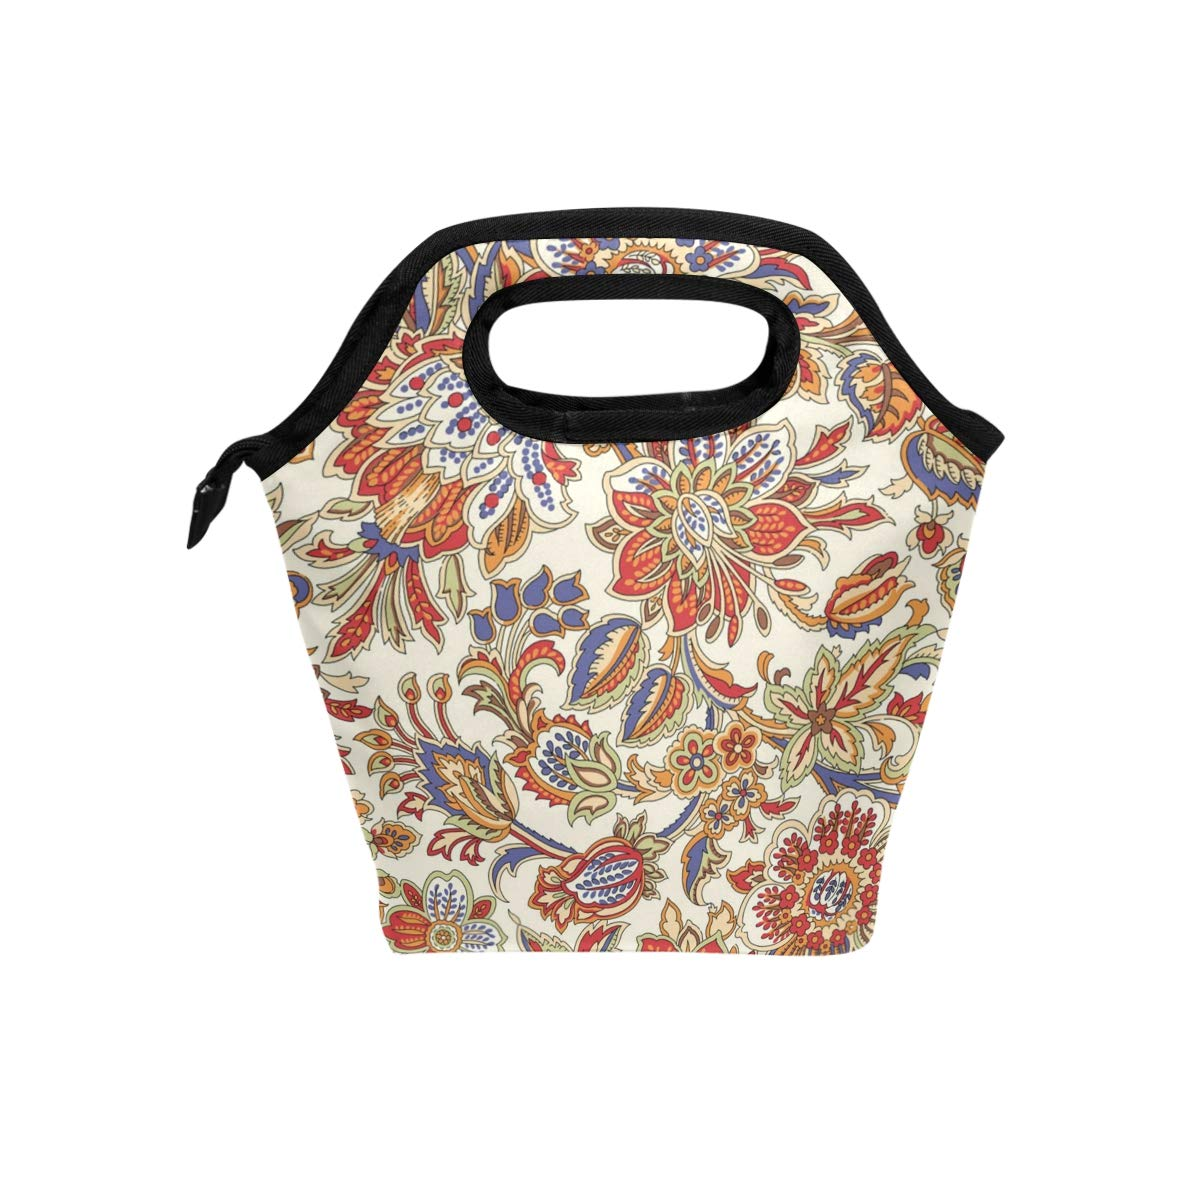 Lunch Box Japanese Flower Illustration Womens Insulated Lunch Bag Kids Zipper Lunch Tote